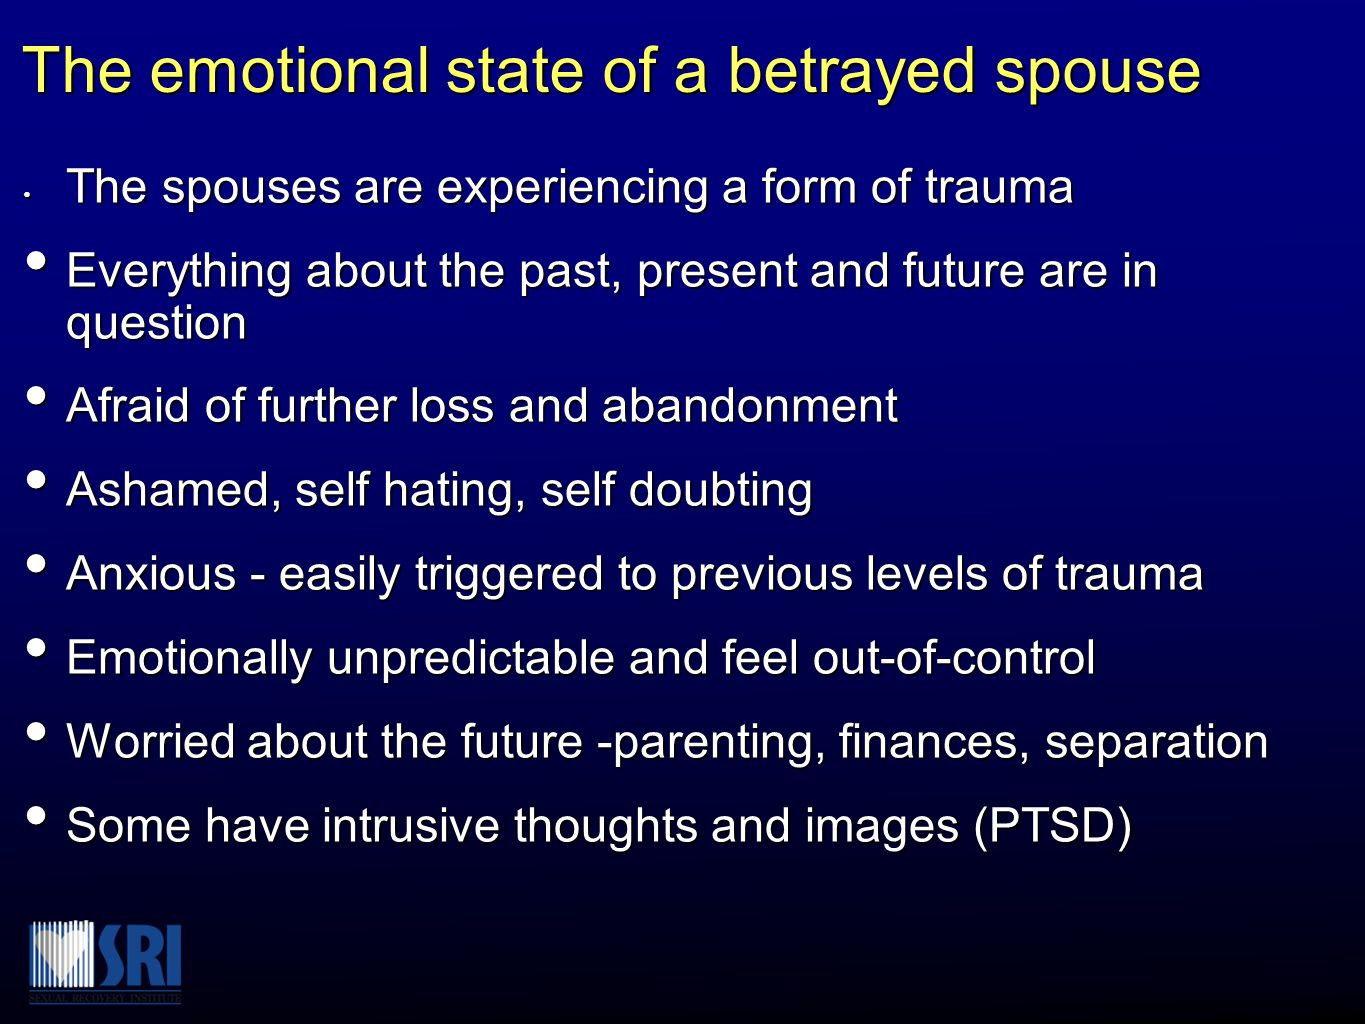 The emotional state of a betrayed spouse The spouses are experiencing a form of trauma The spouses are experiencing a form of trauma Everything about